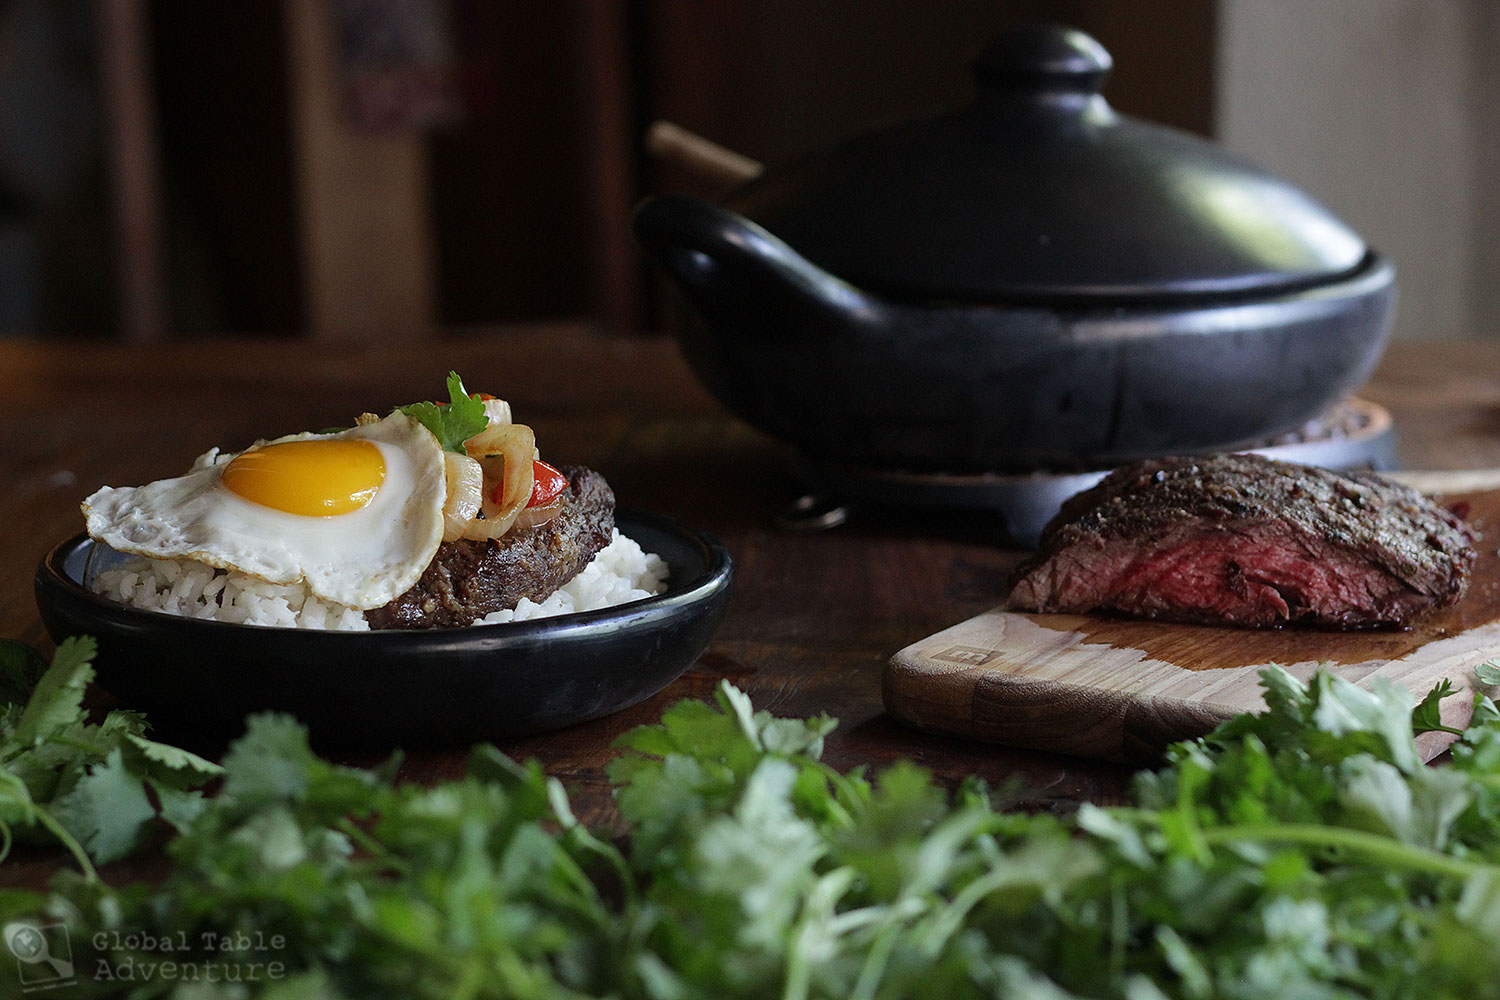 Colombian steak eggs bistec a caballo global table adventure recipe for colombian steak eggs bistec a caballo forumfinder Gallery